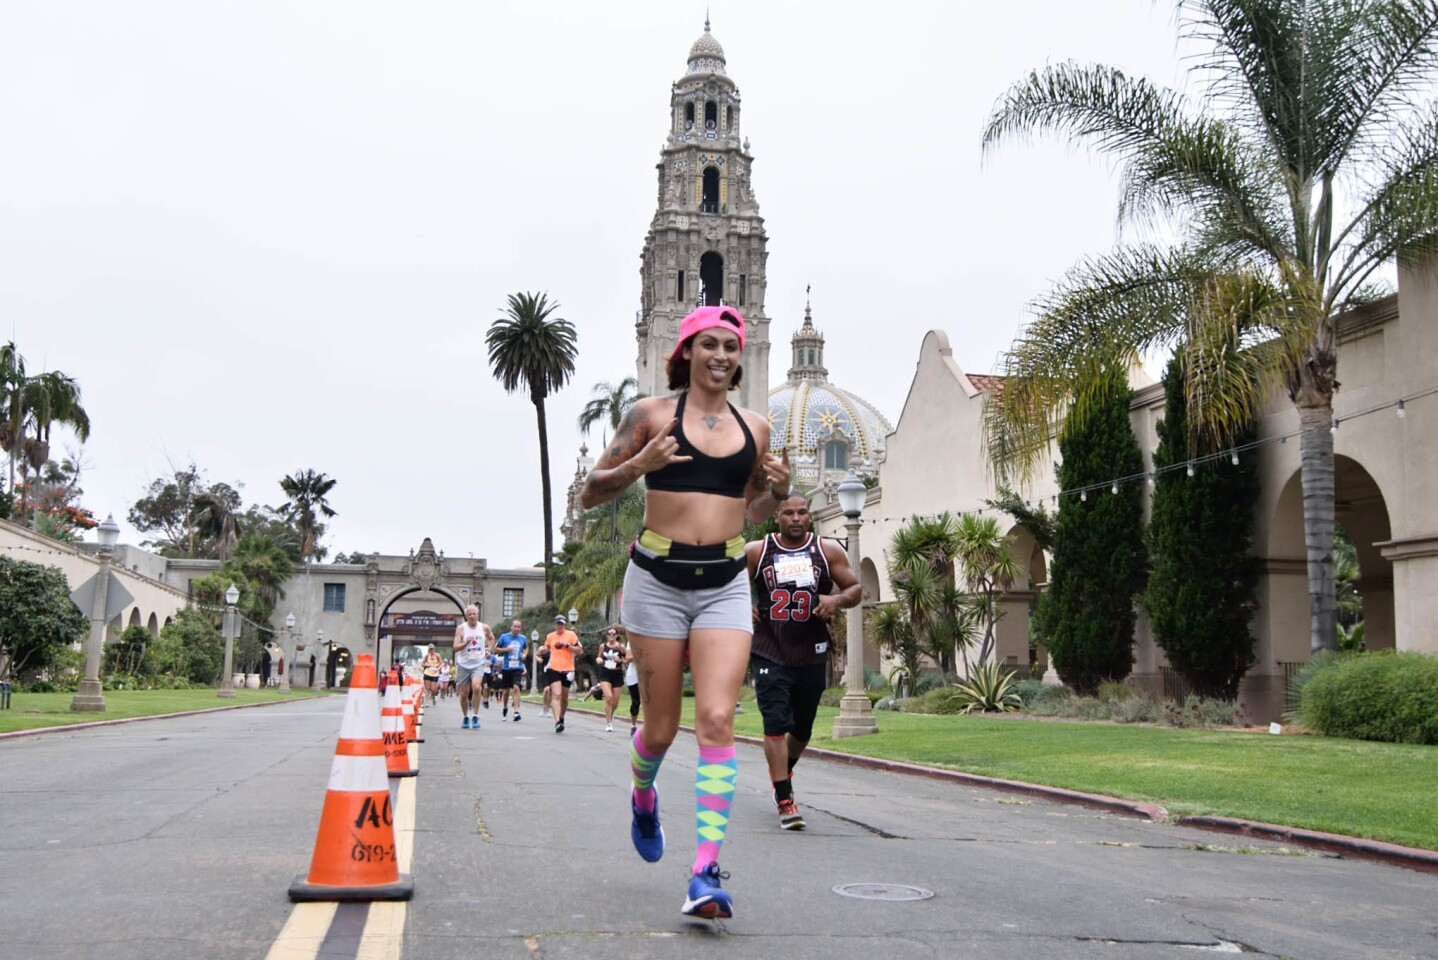 Runners got a full tour of one of San Diego's finest attractions during the Balboa Park 8 Miler on Saturday, Aug. 5, 2017. (Jesse Arroyo)